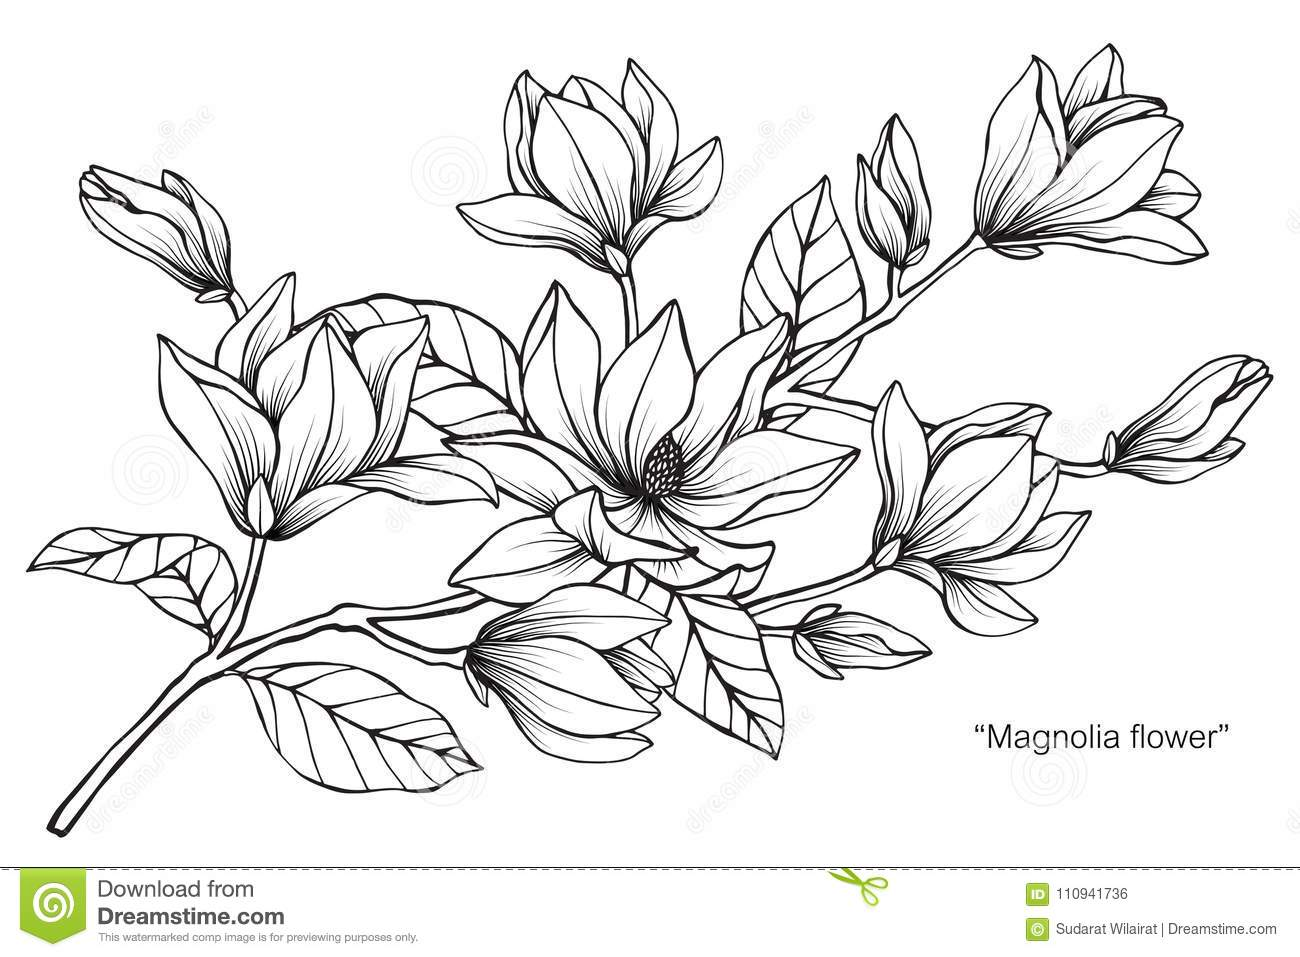 Magnolia flower drawing illustration black and white with line art download magnolia flower drawing illustration black and white with line art stock illustration mightylinksfo